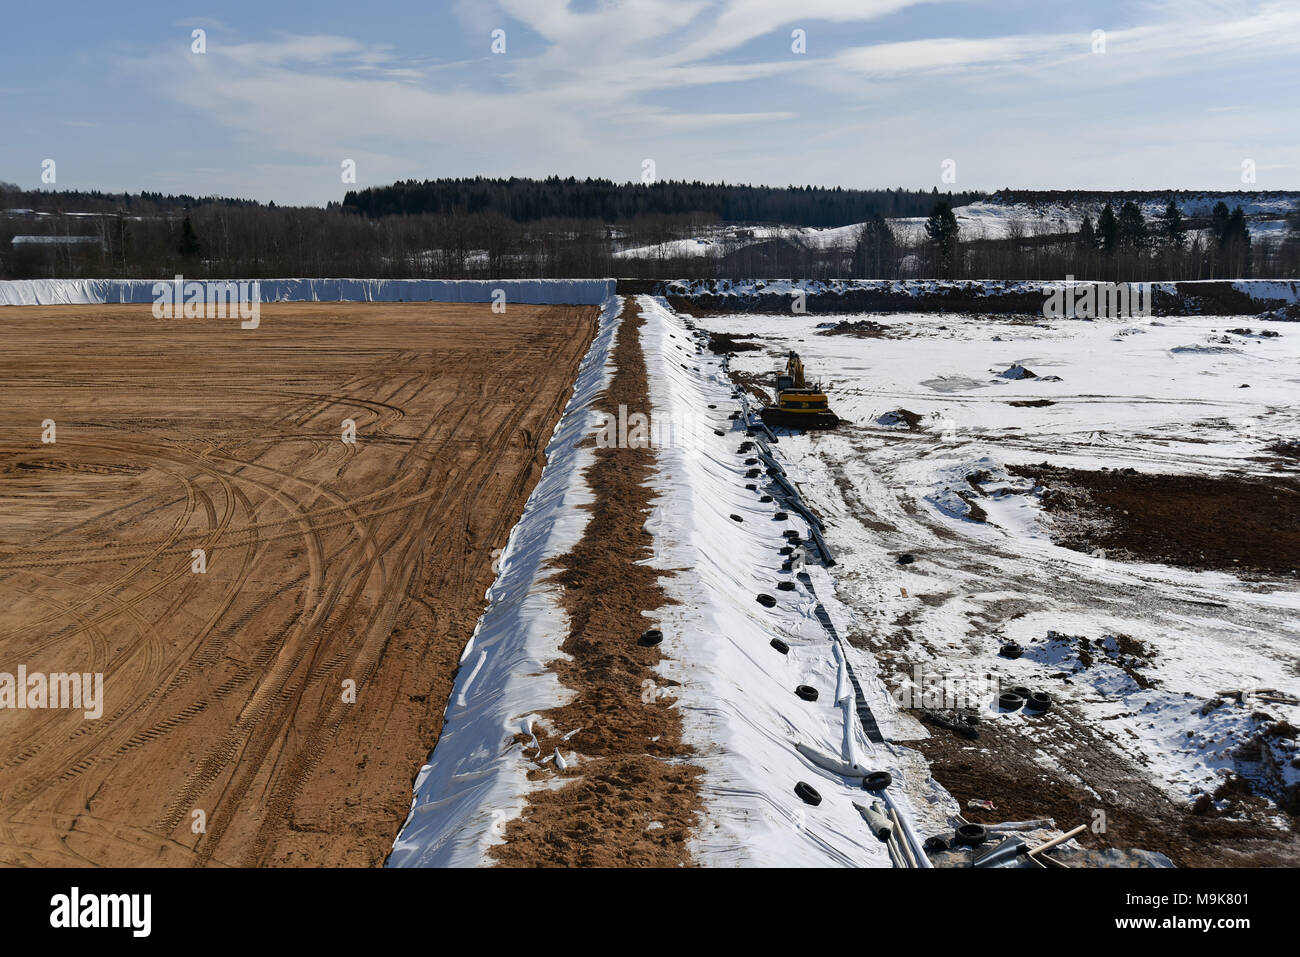 Moscow Oblast, Russia. 25 March, 2018. Base for the landfill site Yadrovo in Moscow Oblast, Russia. - Stock Image